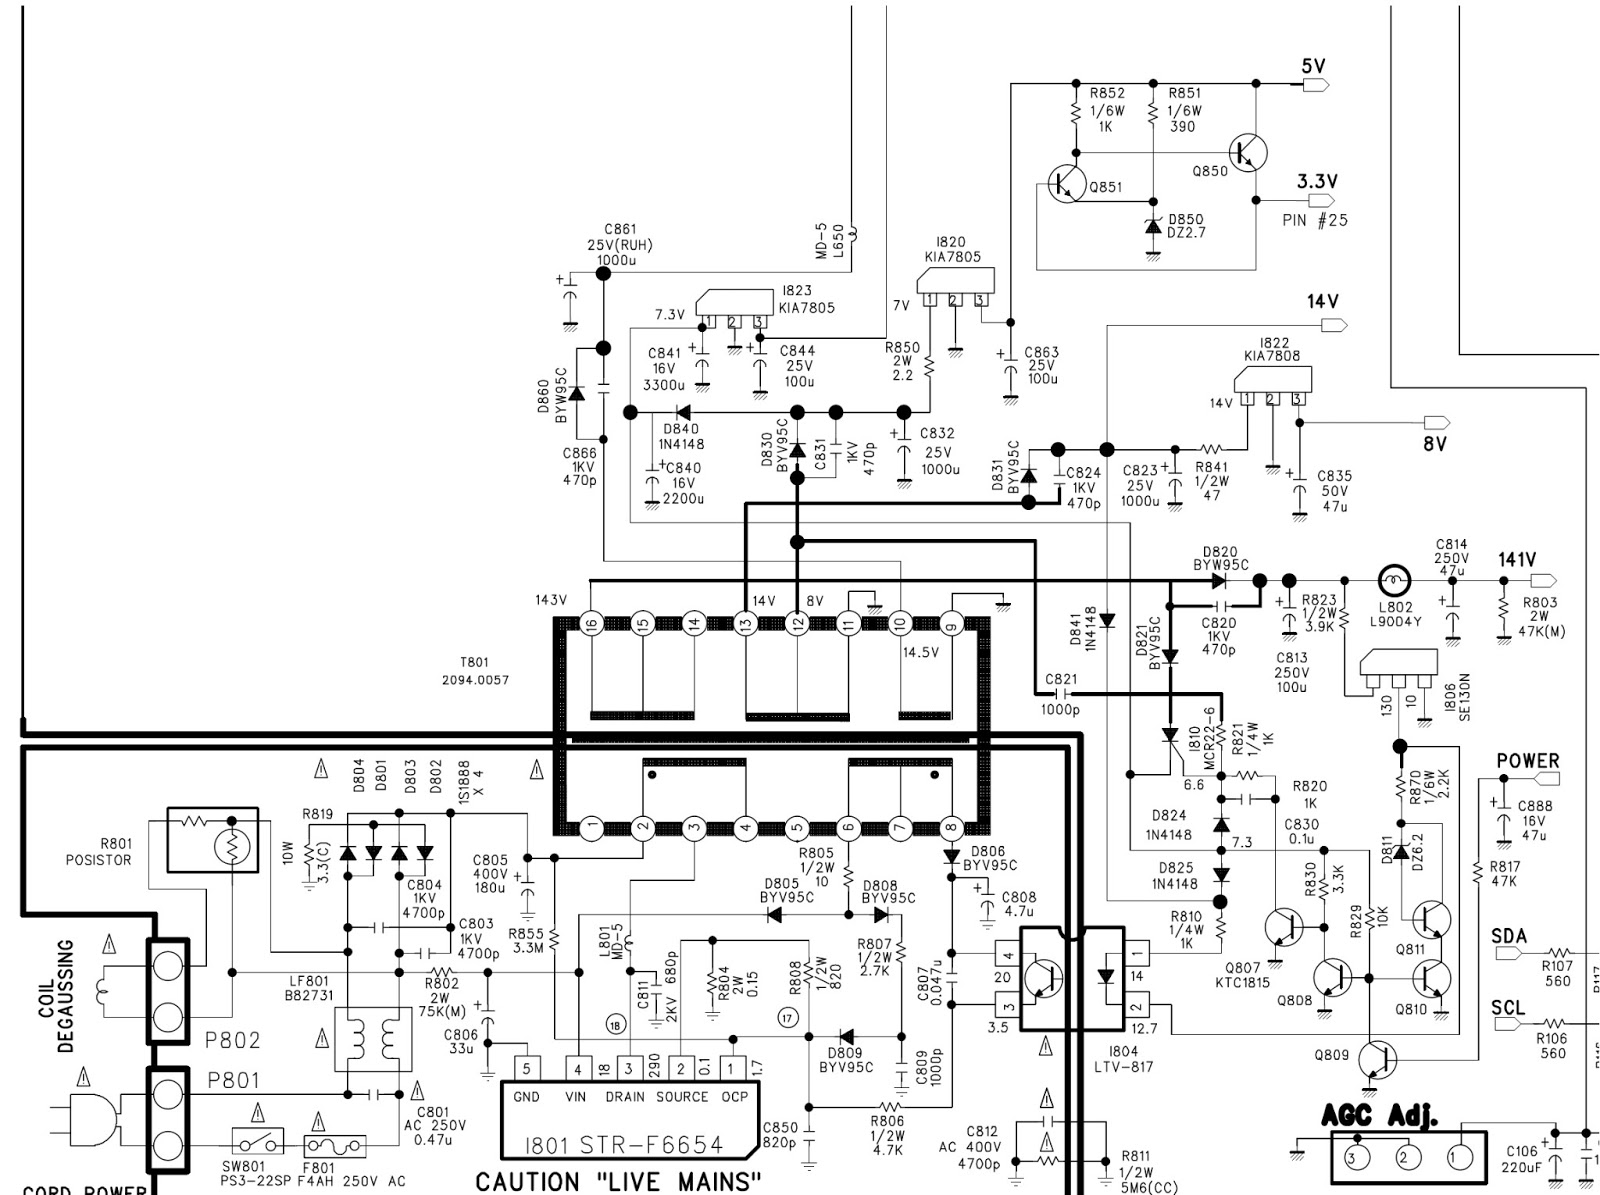 data cable wiring diagram 1997 ford expedition xlt stereo pcb soldering headphone wire database samsung best library speaker